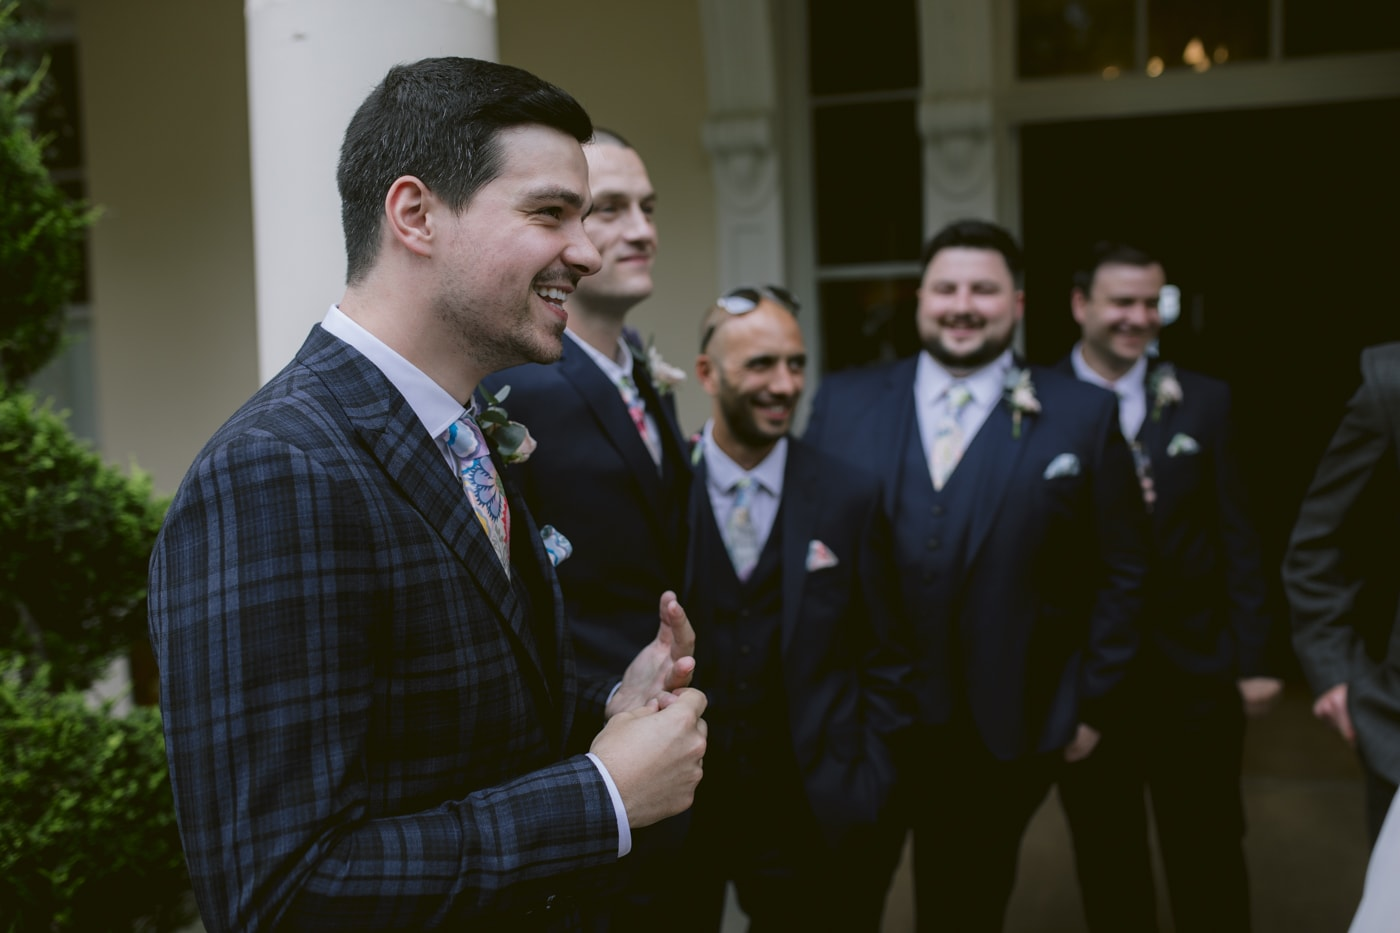 Groom and Group Portrait Shoot Outside at Storrs Hall Wedding